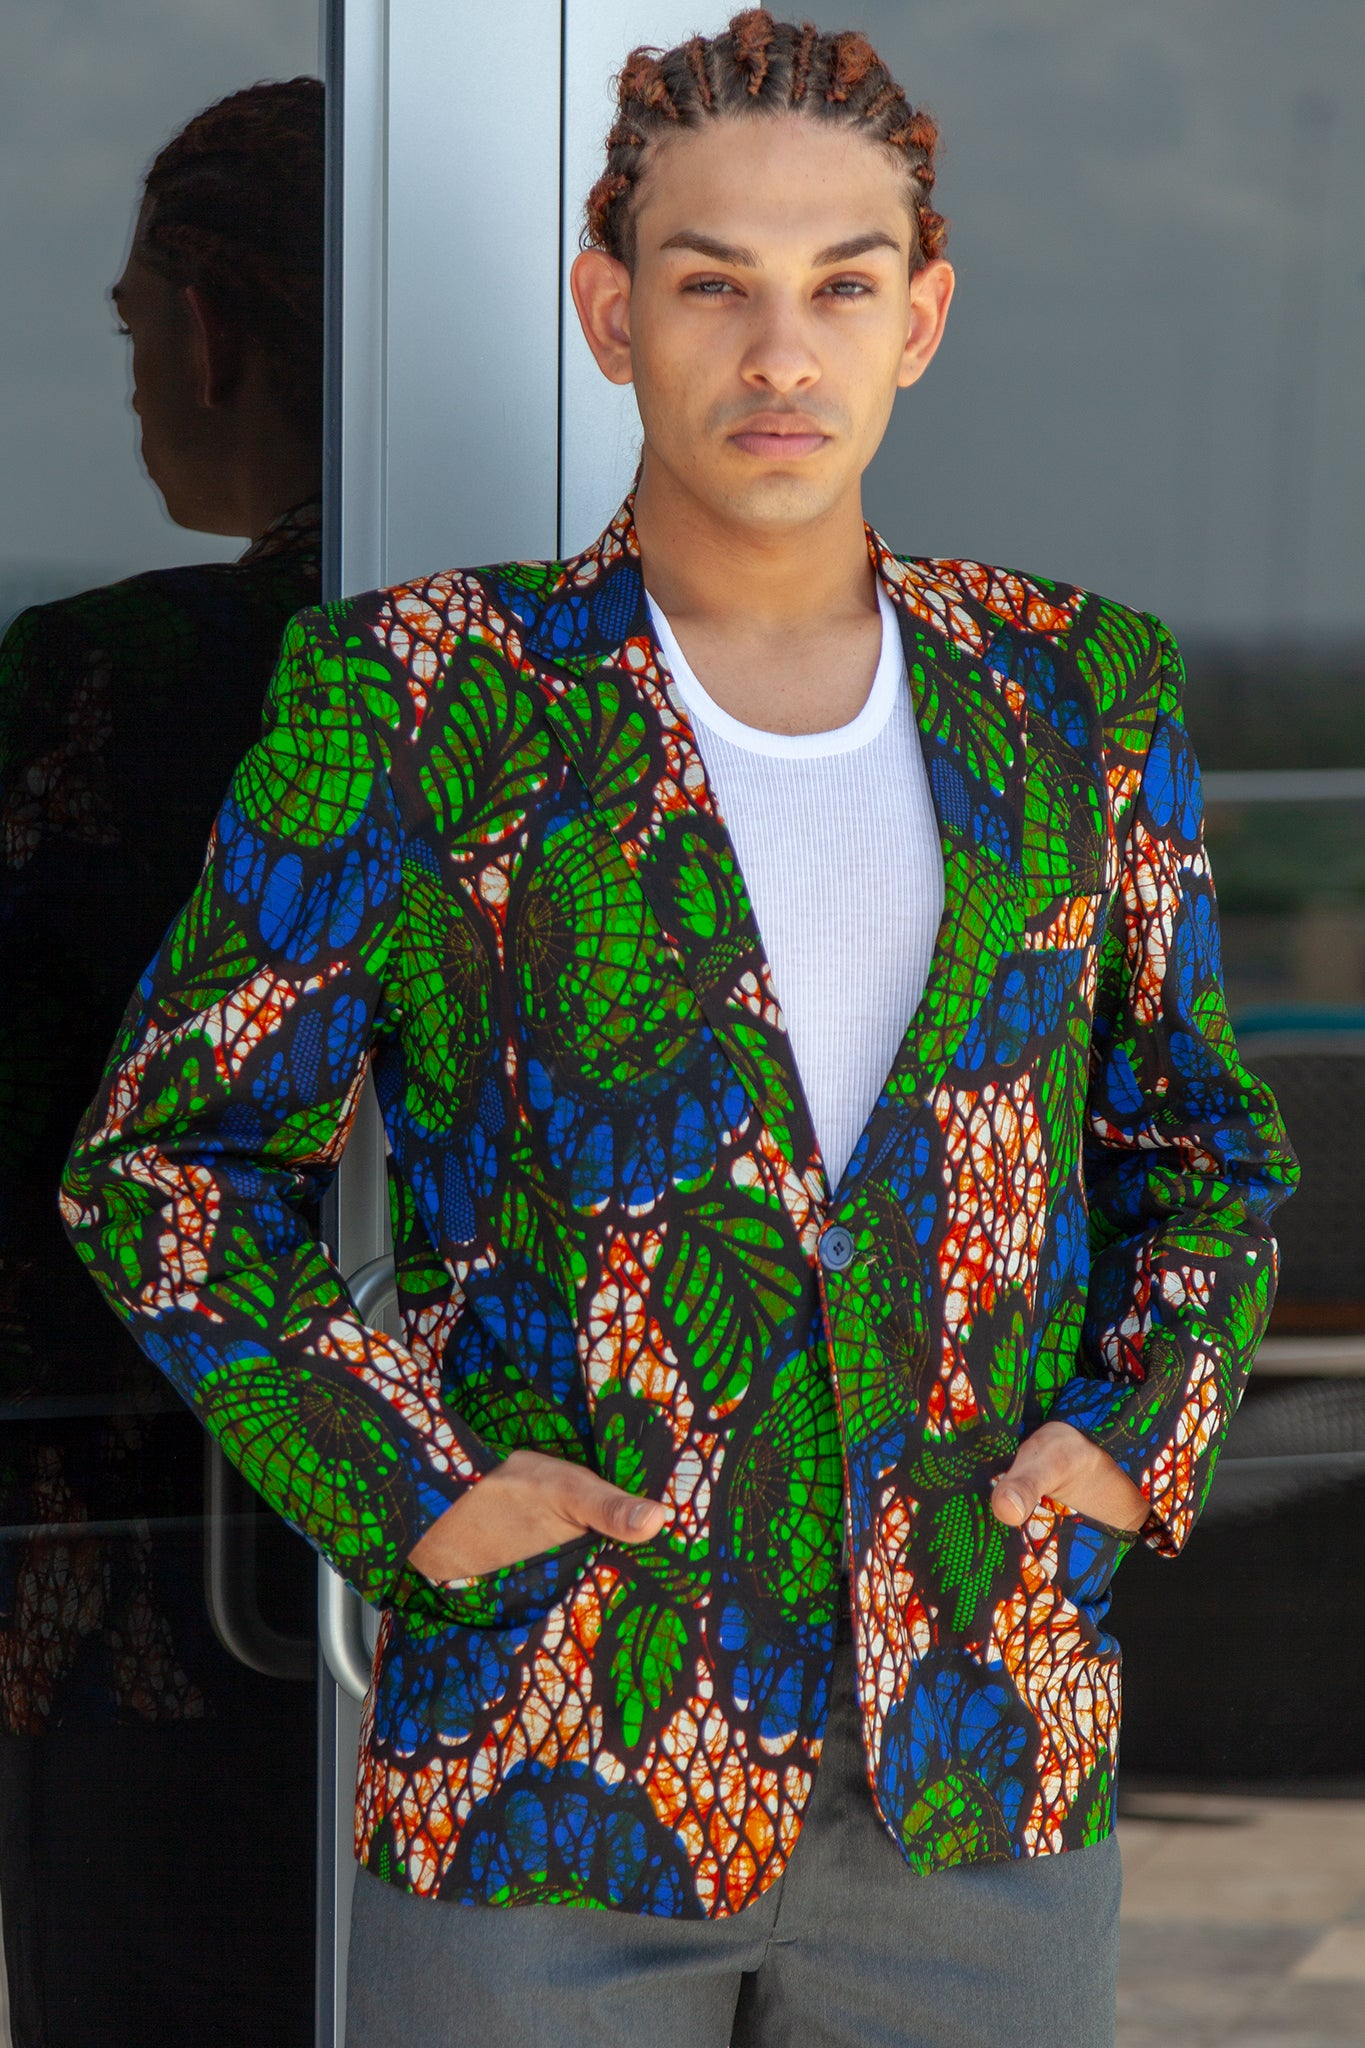 African Mens Blazer Jacket - Royal Blue/Green Floral print - Africas Closet